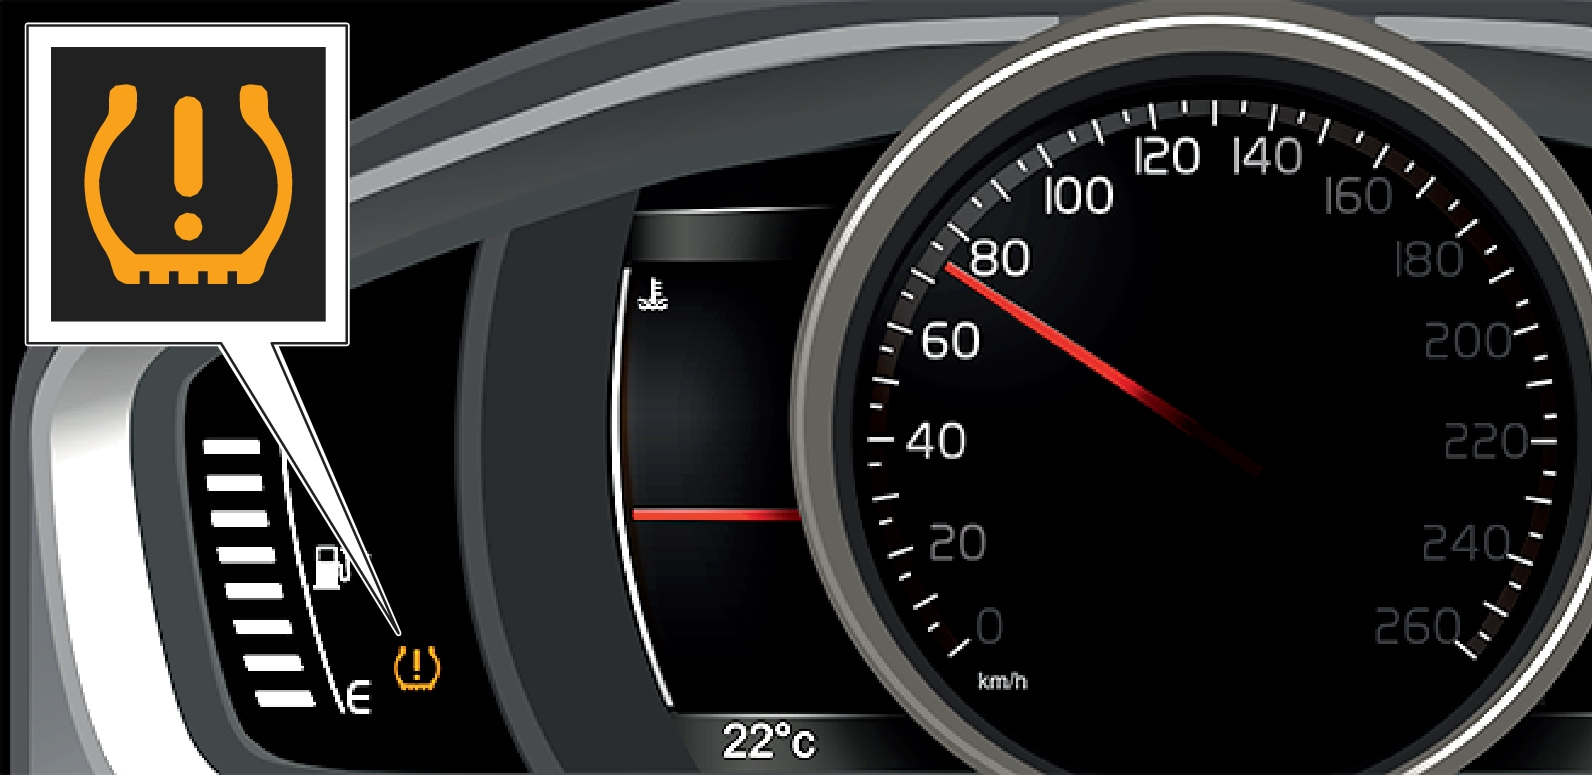 15w49 - Support site - Tyre pressure instrument cluster